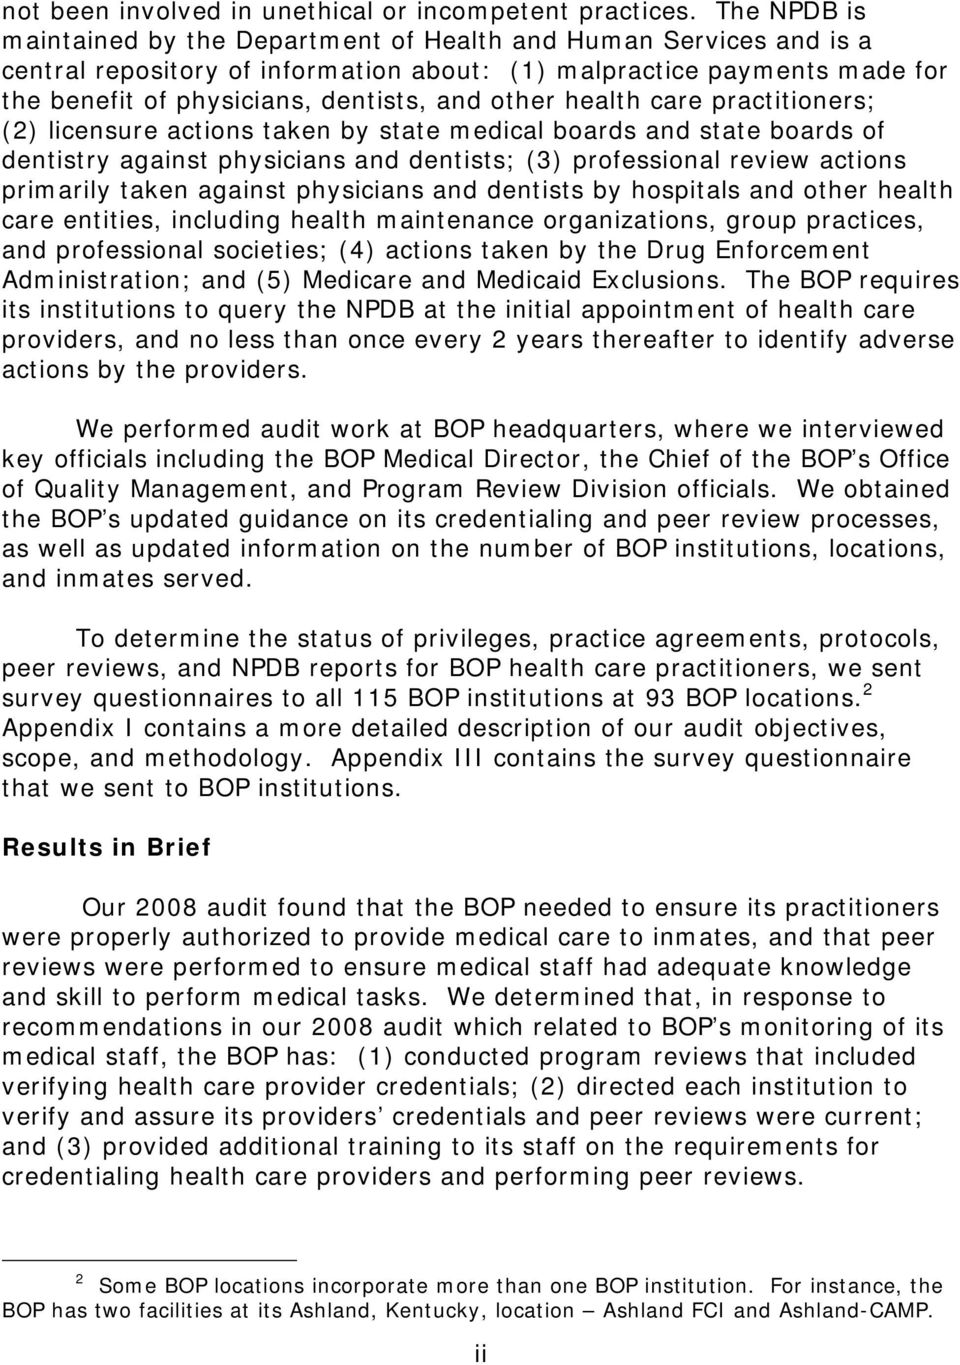 other health care practitioners; (2) licensure actions taken by state medical boards and state boards of dentistry against physicians and dentists; (3) professional review actions primarily taken